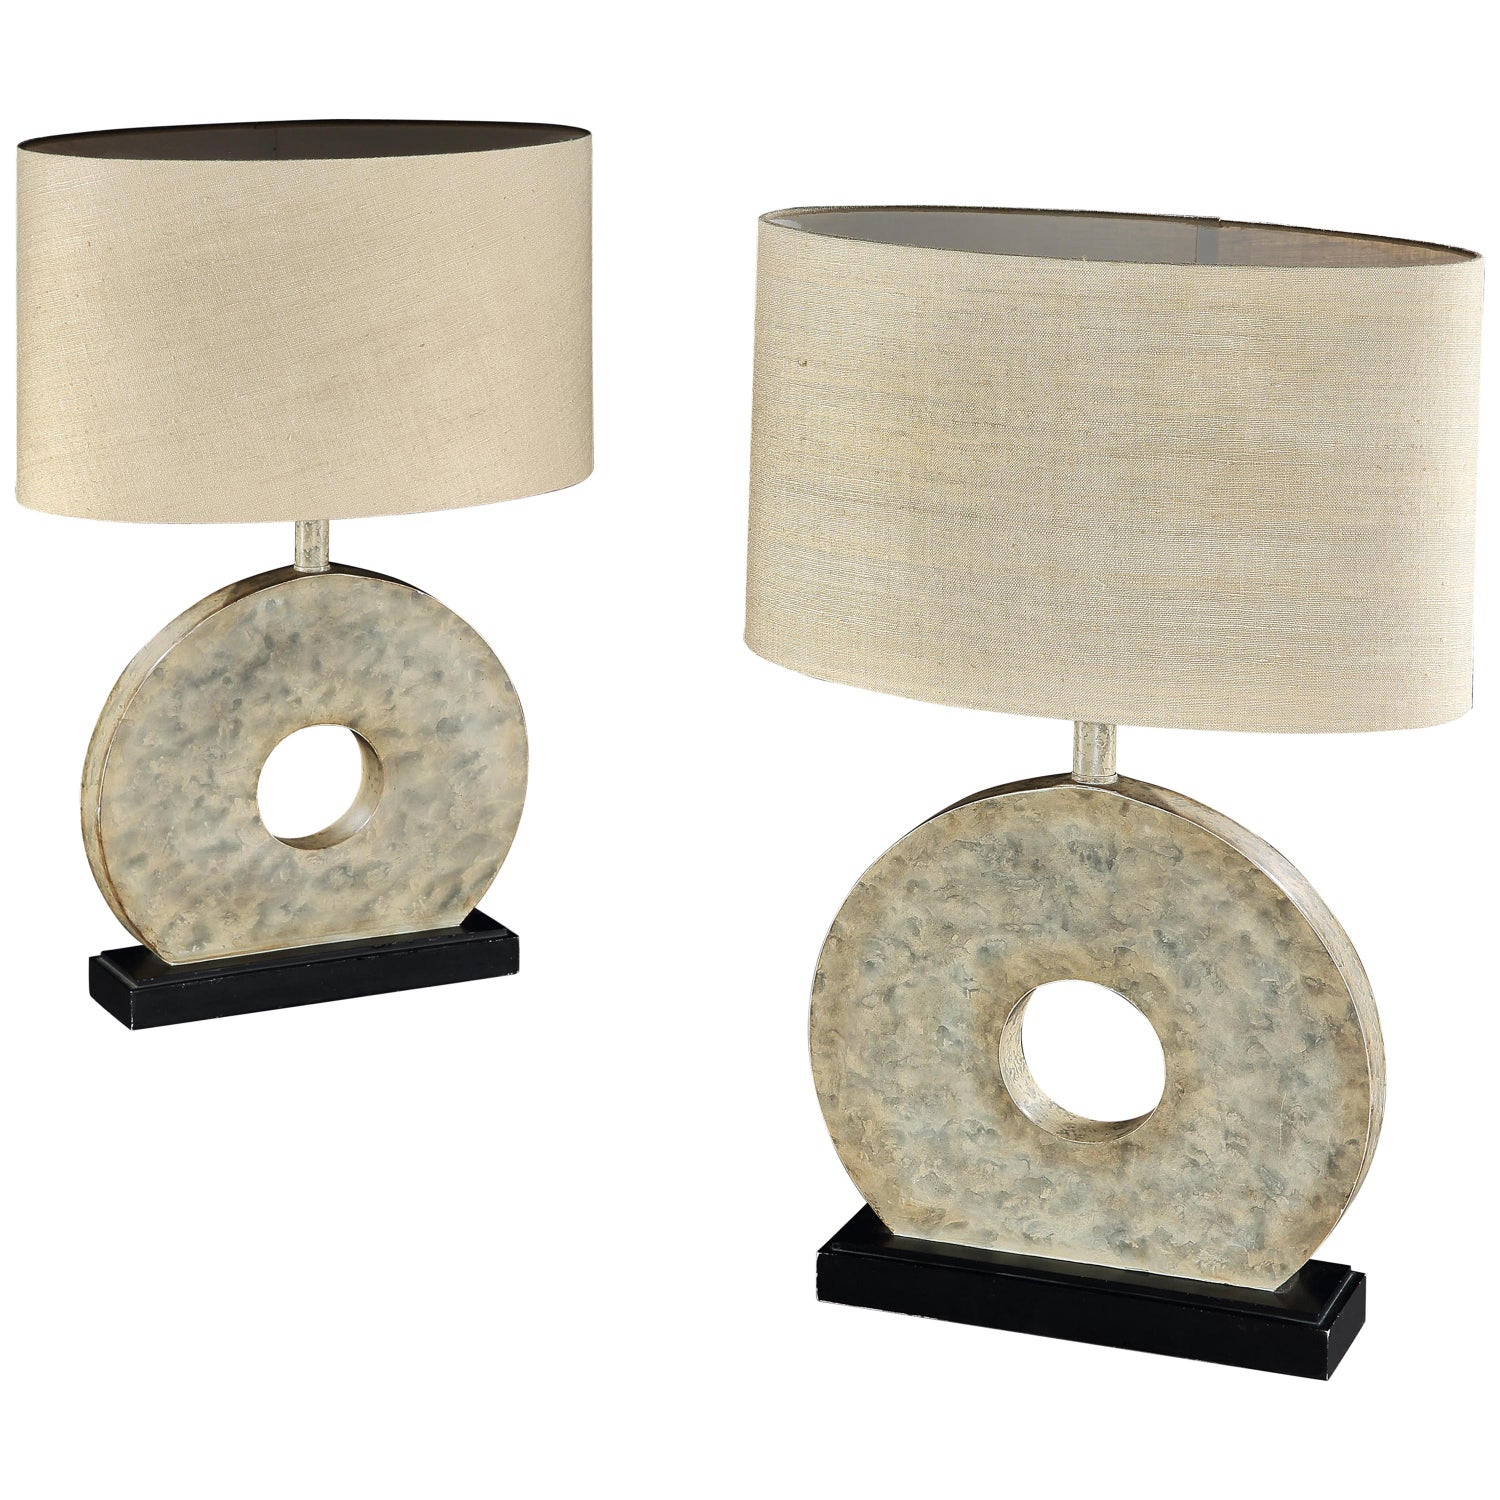 Lamps Table Pair Marbled Midcentury Modern Circle Infinity Earth Palette